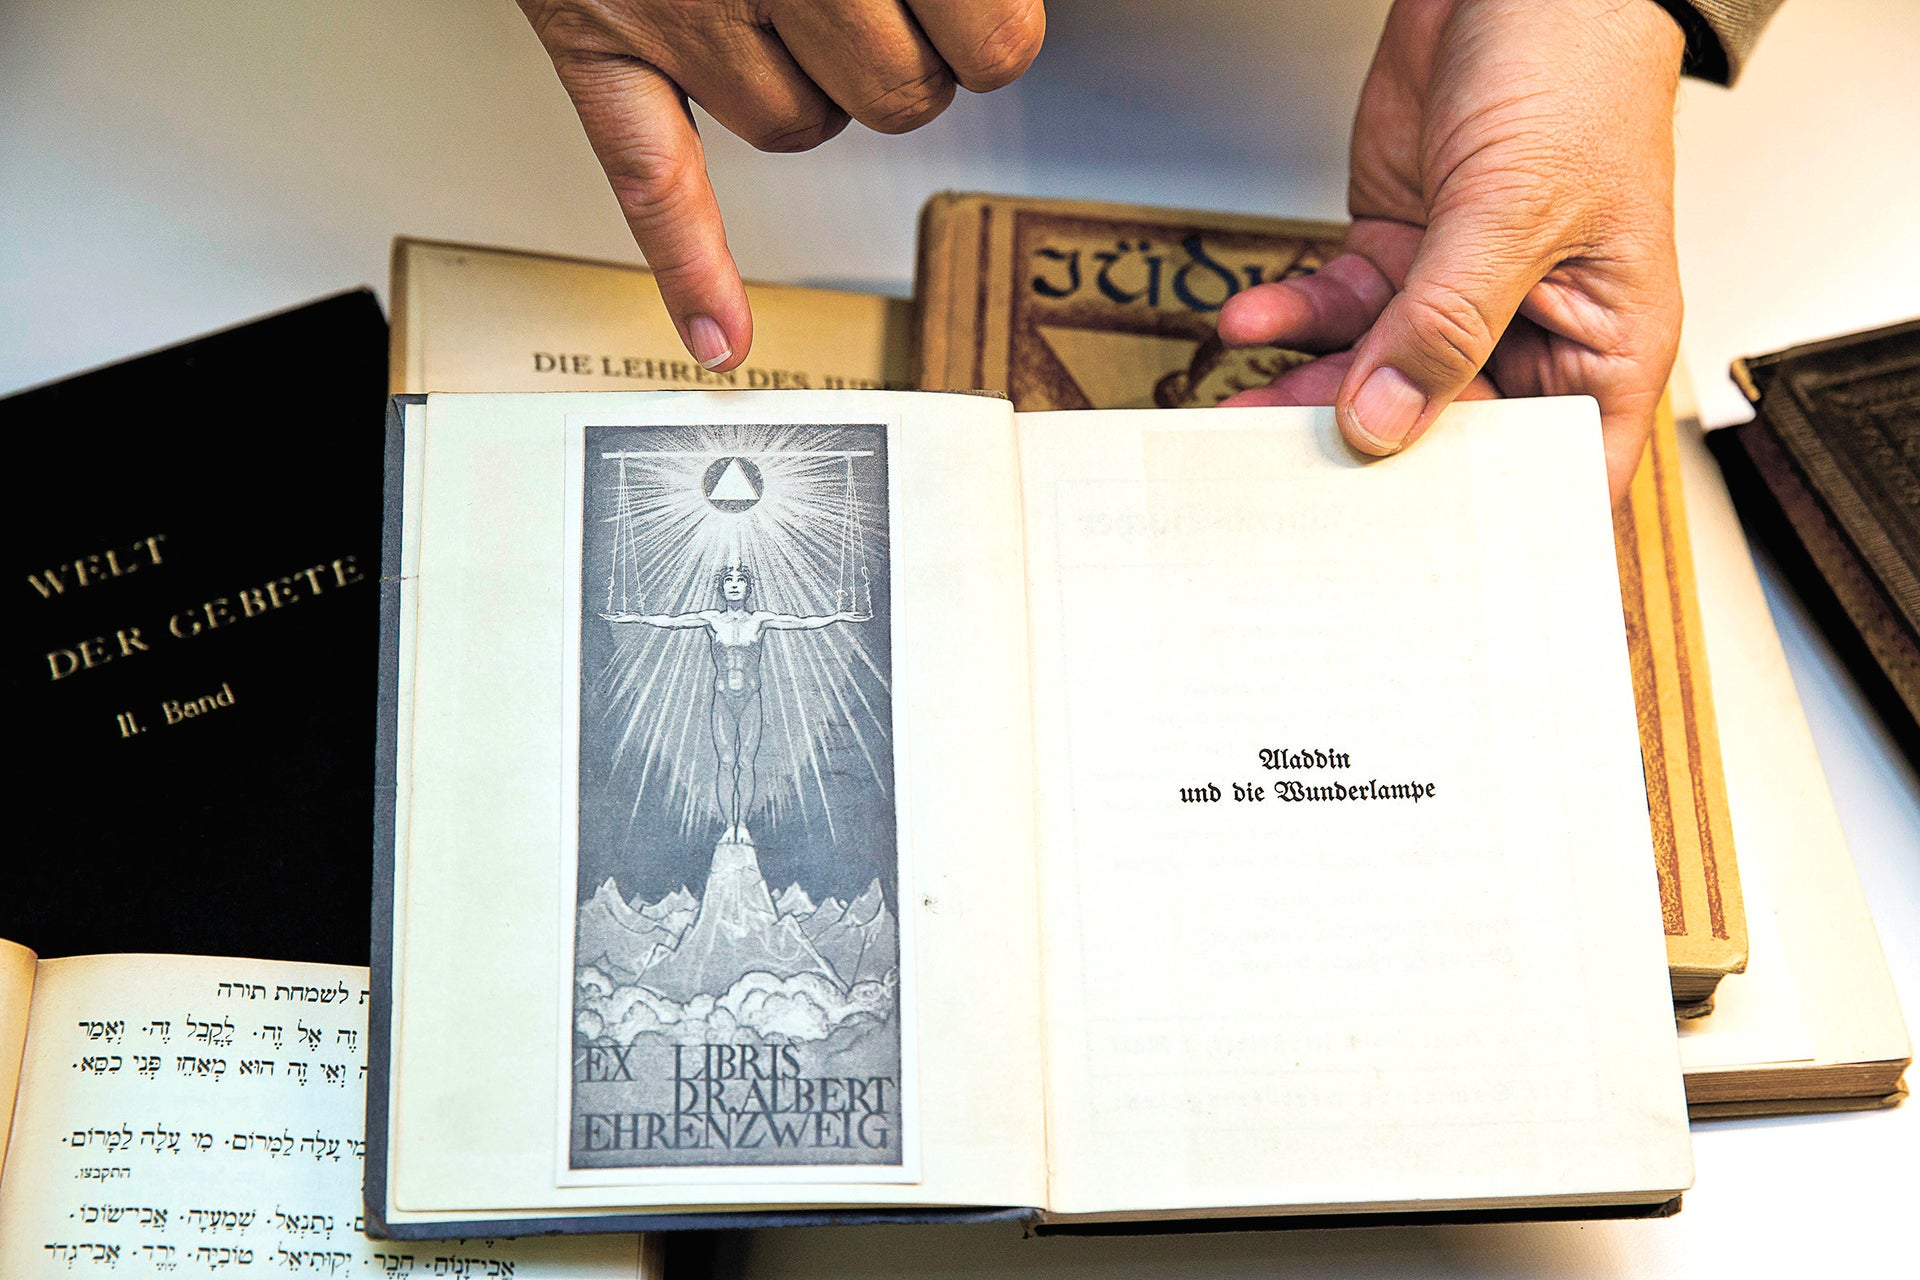 A book of Masonic symbols that was confiscated by the Nazis, and now on display at a library in Nuremberg.